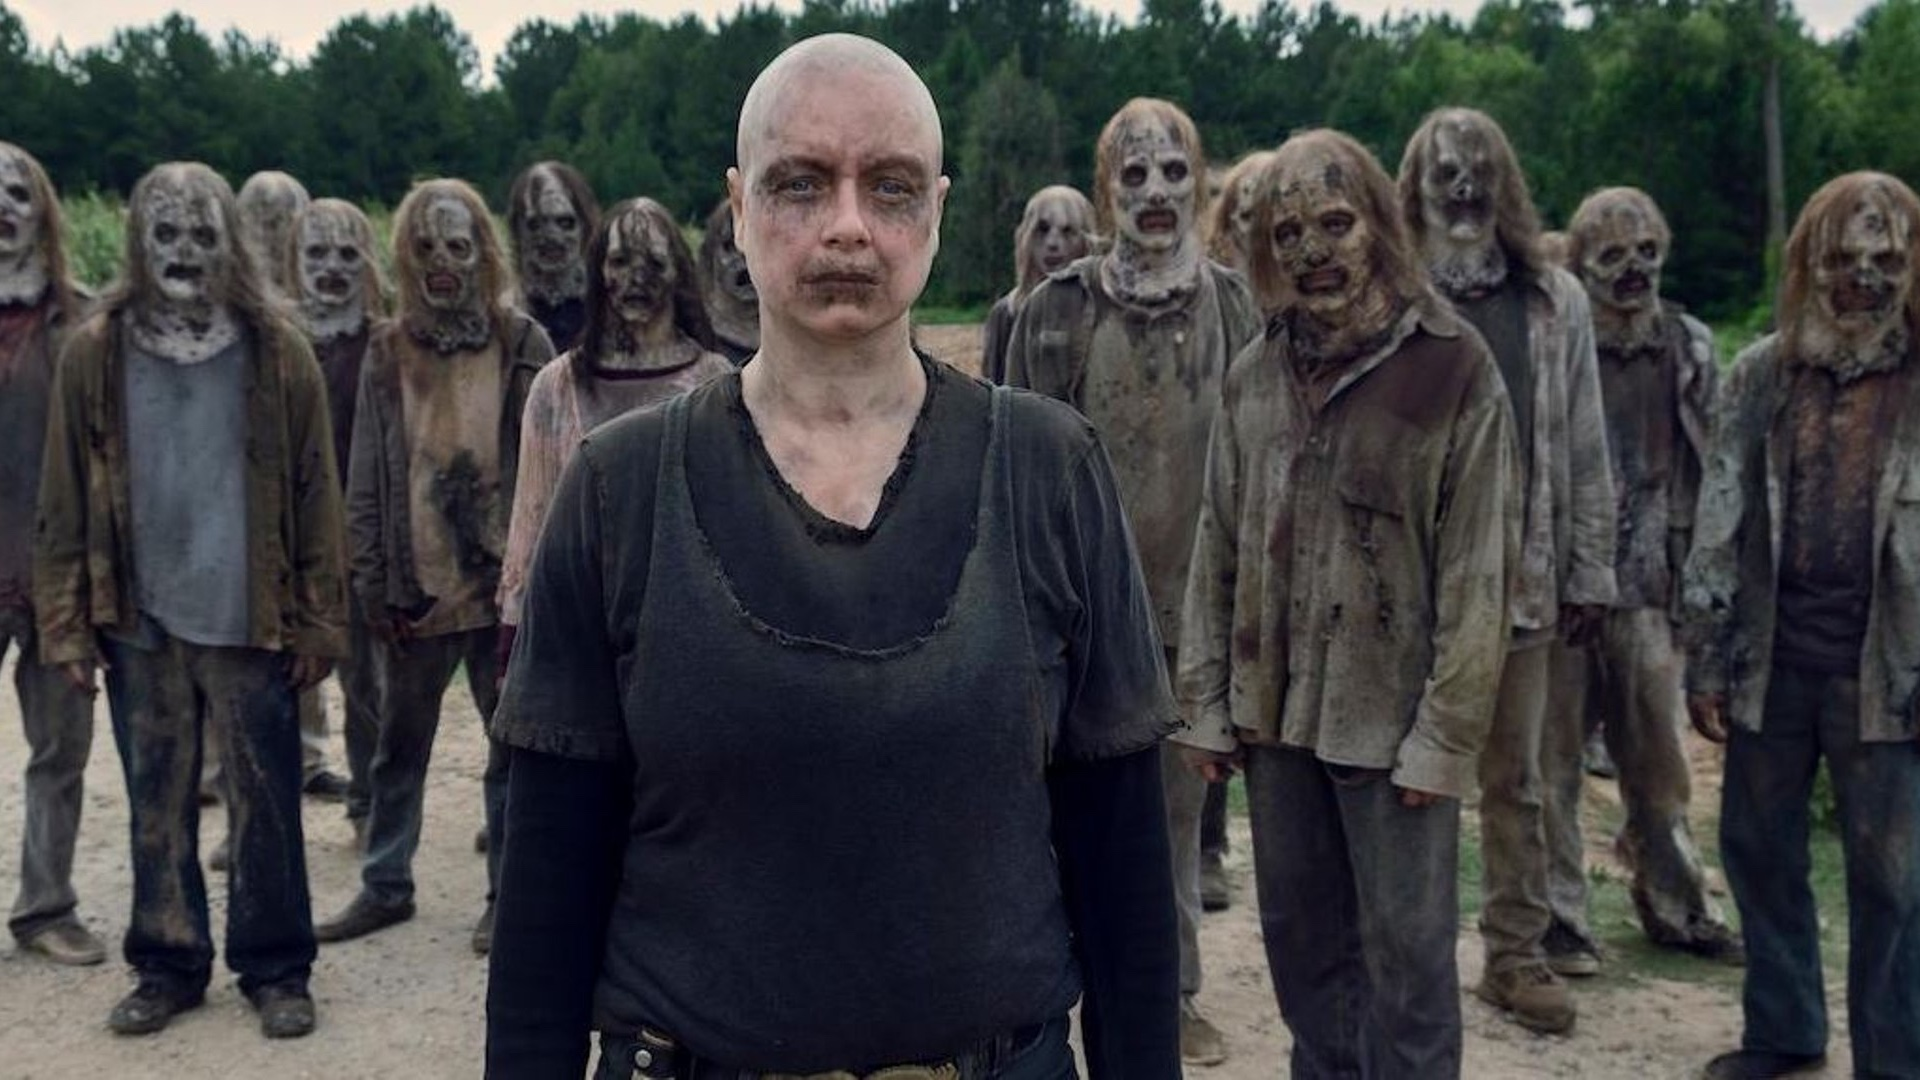 A New WALKING DEAD Spinoff Series Has Been Confirmed By AMC